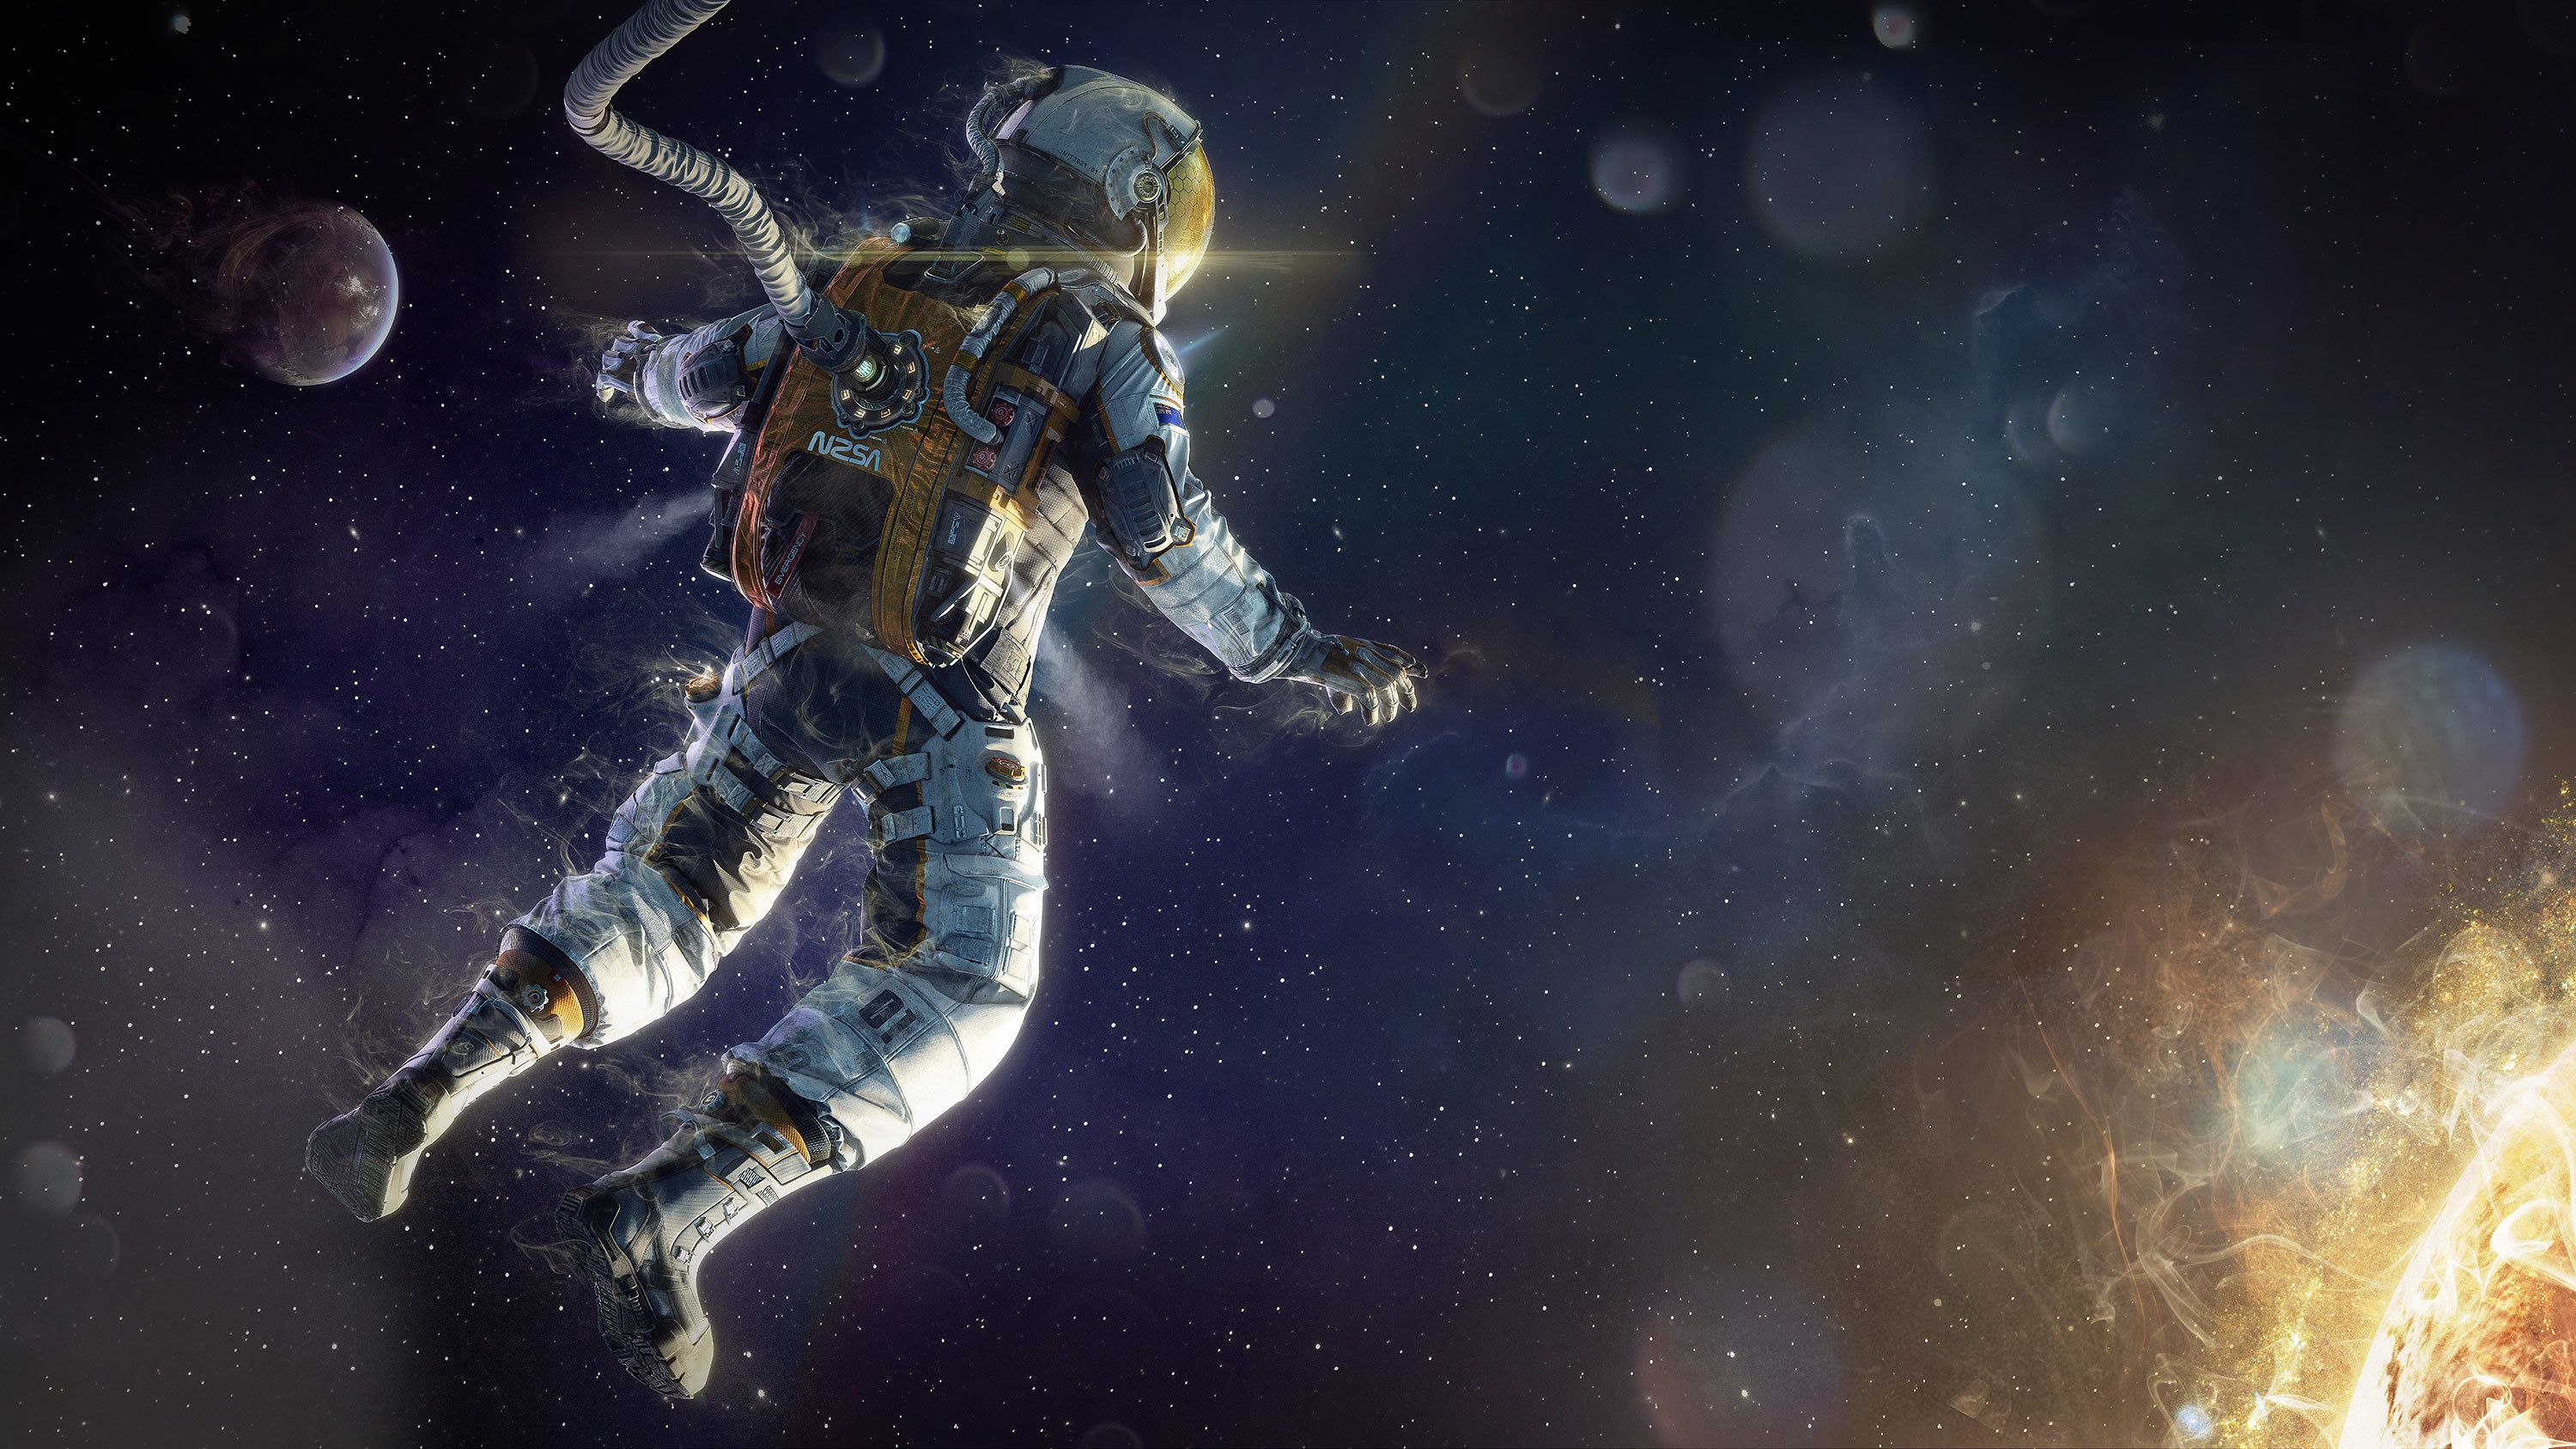 Art Astronaut Space Star Wallpaper 3000x1687 171704 Wallpaperup Astronaut Wallpaper Astronauts In Space Space Suit